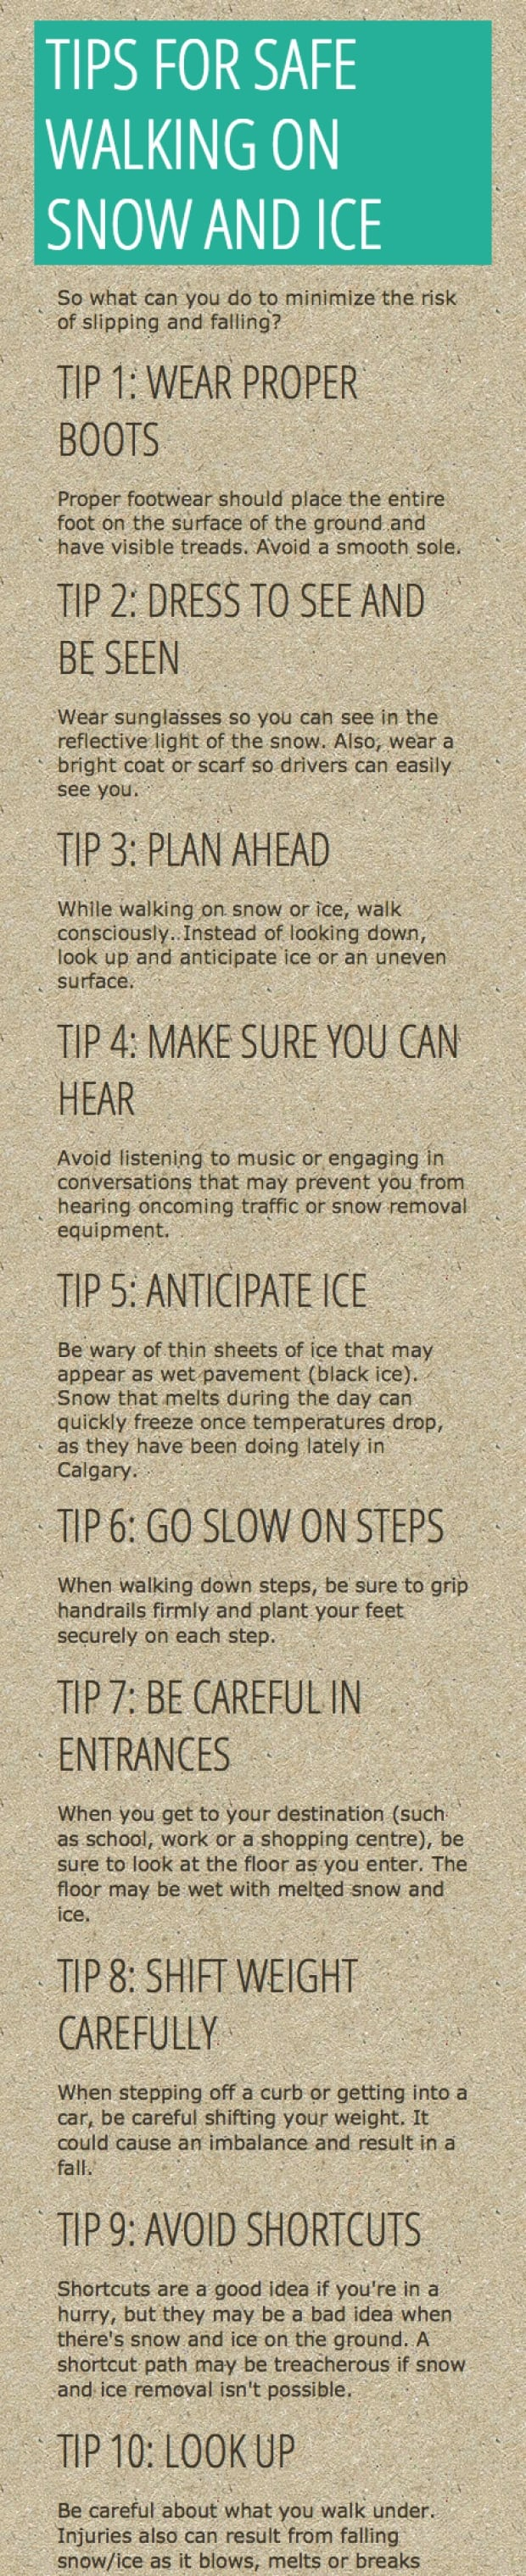 10 tips for walking on snow and ice